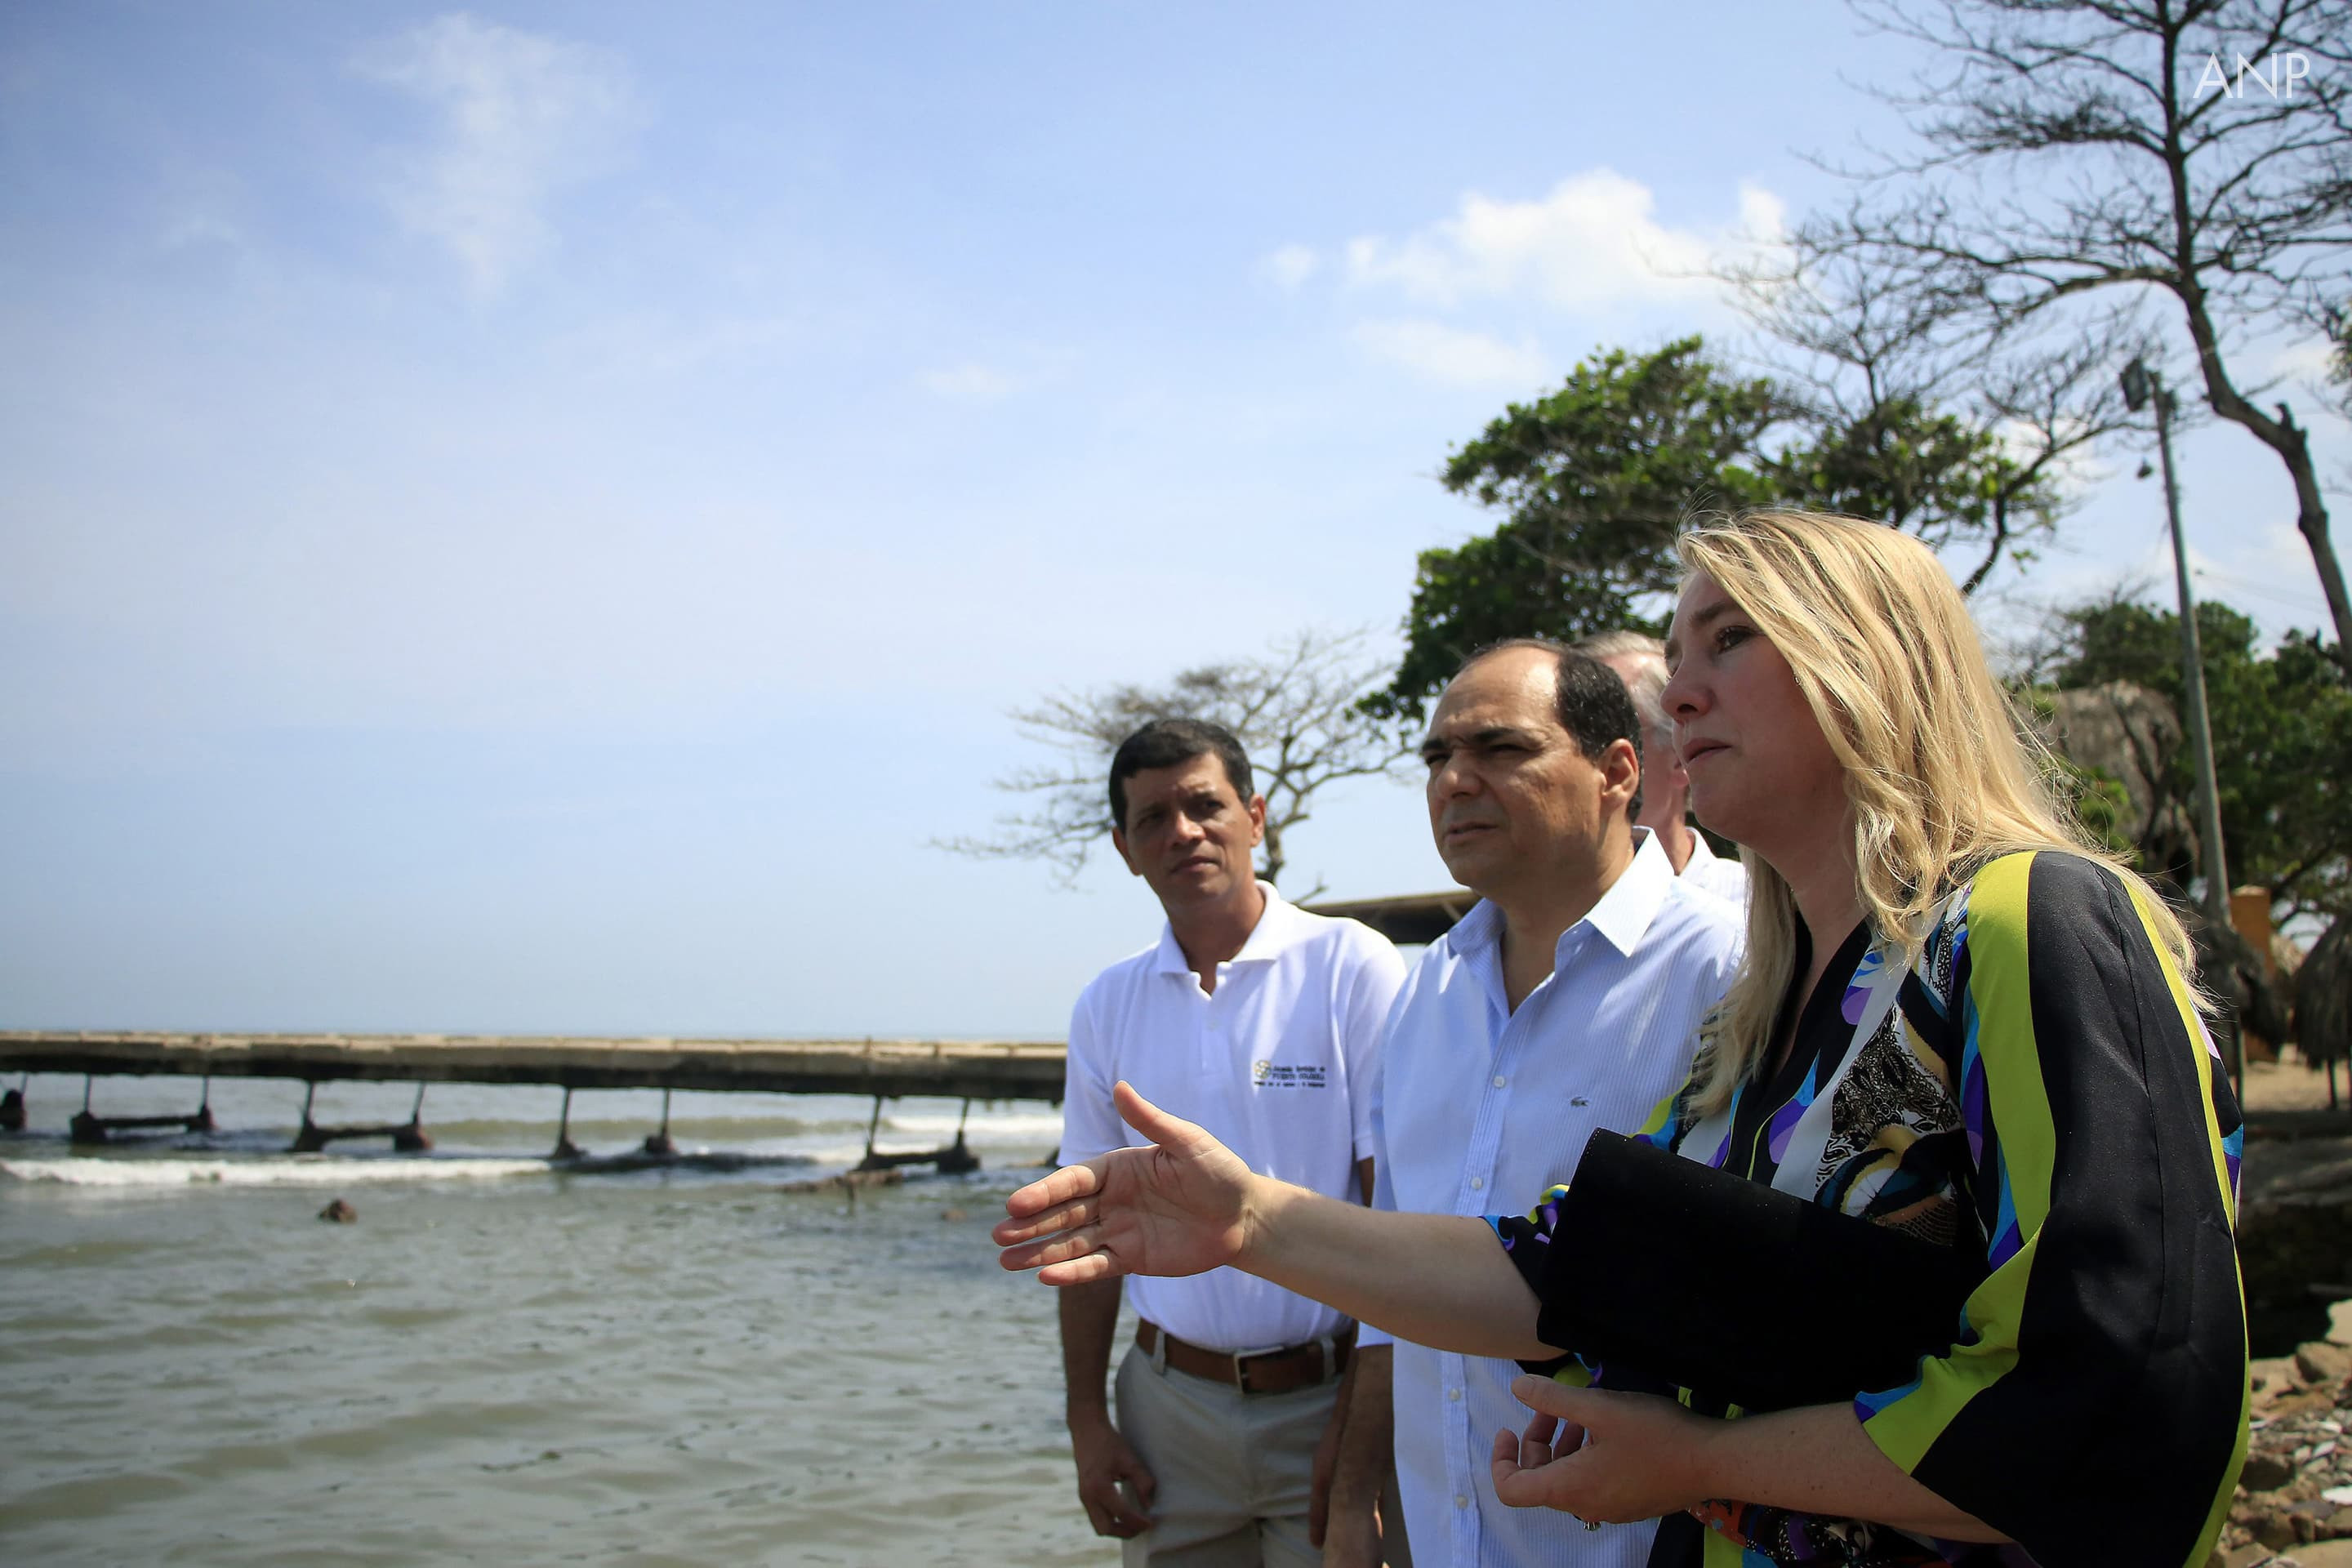 Early September, Minister Schultz van Haegen visited Colombia. Together with regional and local officials she inspected and discussed the erosion in Puerto Colombia, which is located on the Caribean coast of the country